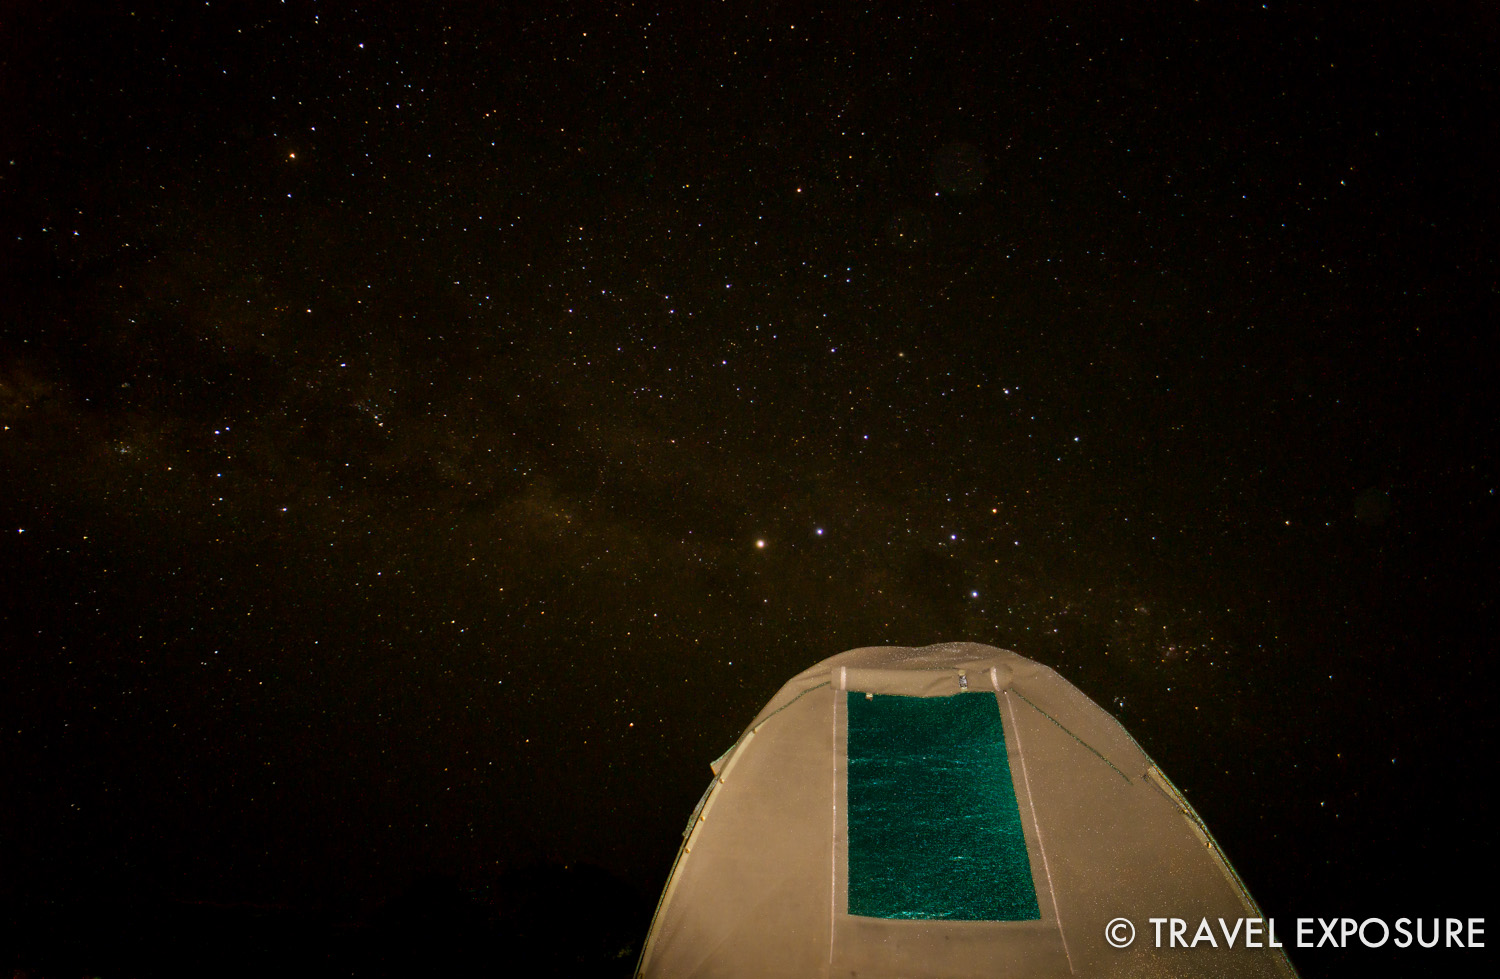 A billion stars lit up the sky while camping in Uganda.